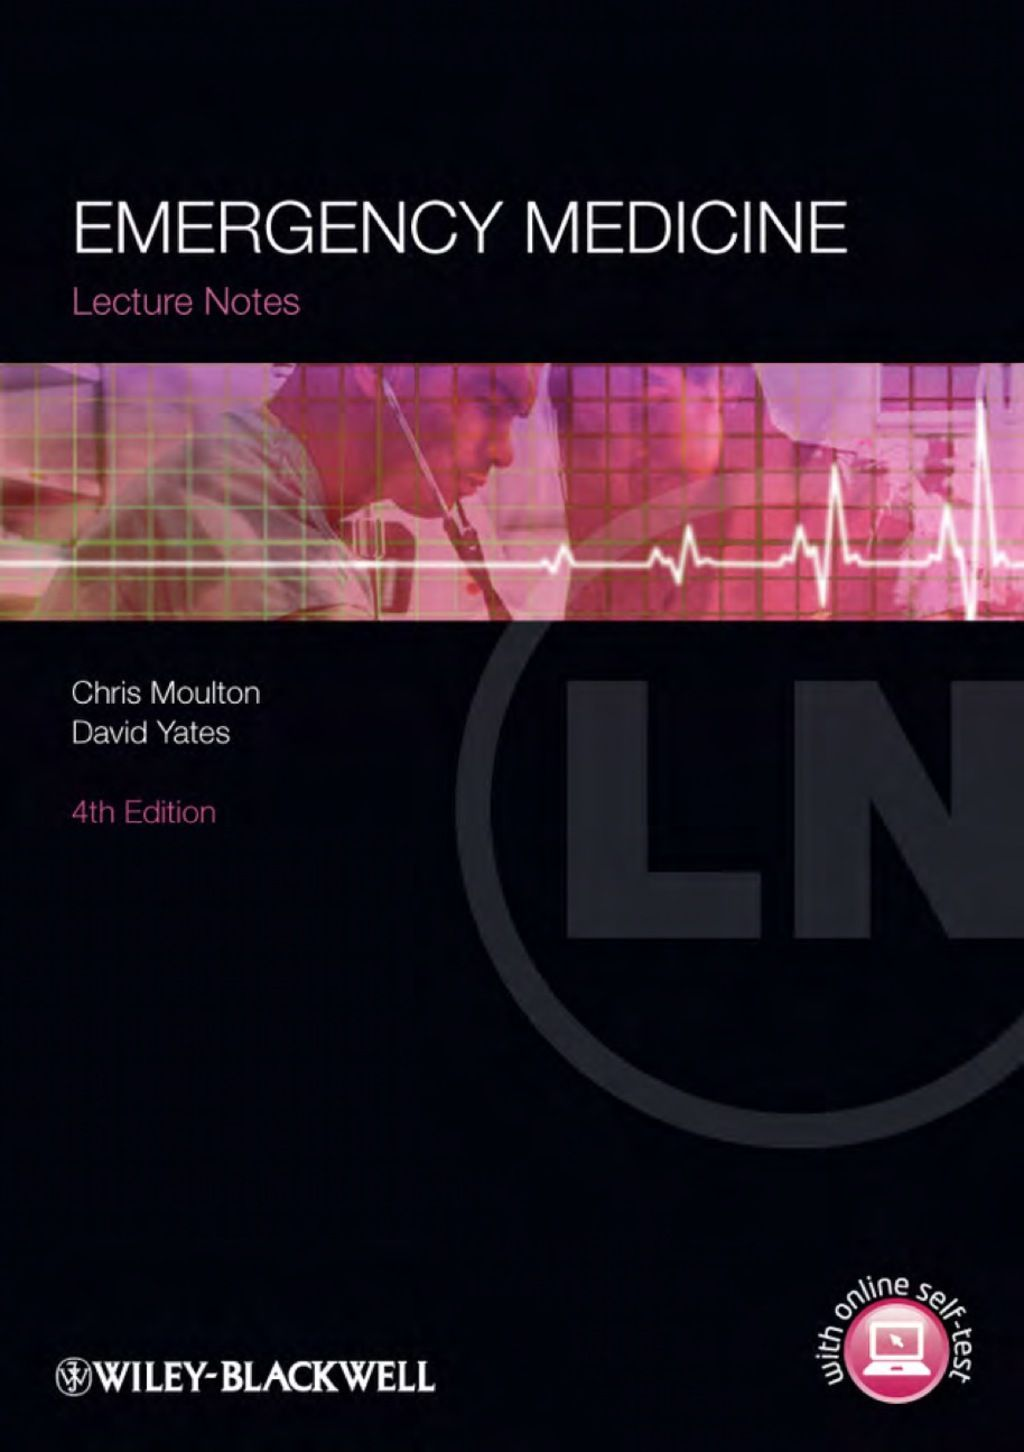 Lecture Notes: Emergency Medicine (eBook) in 2019 | Products